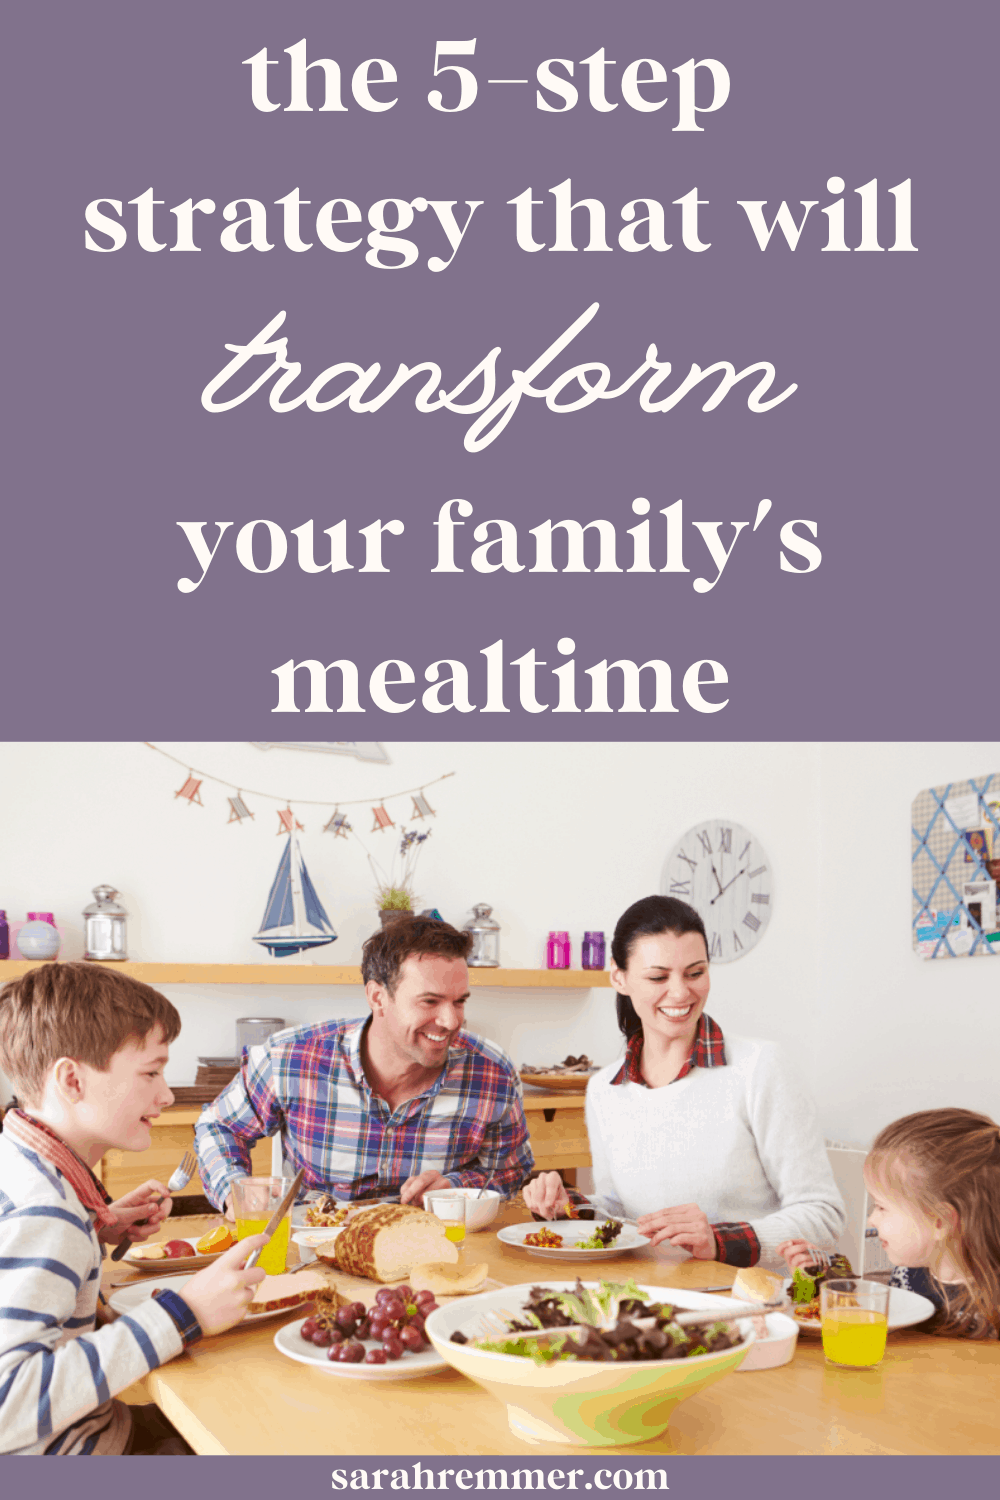 pinterest pin for 5-step strategy to transform family meals